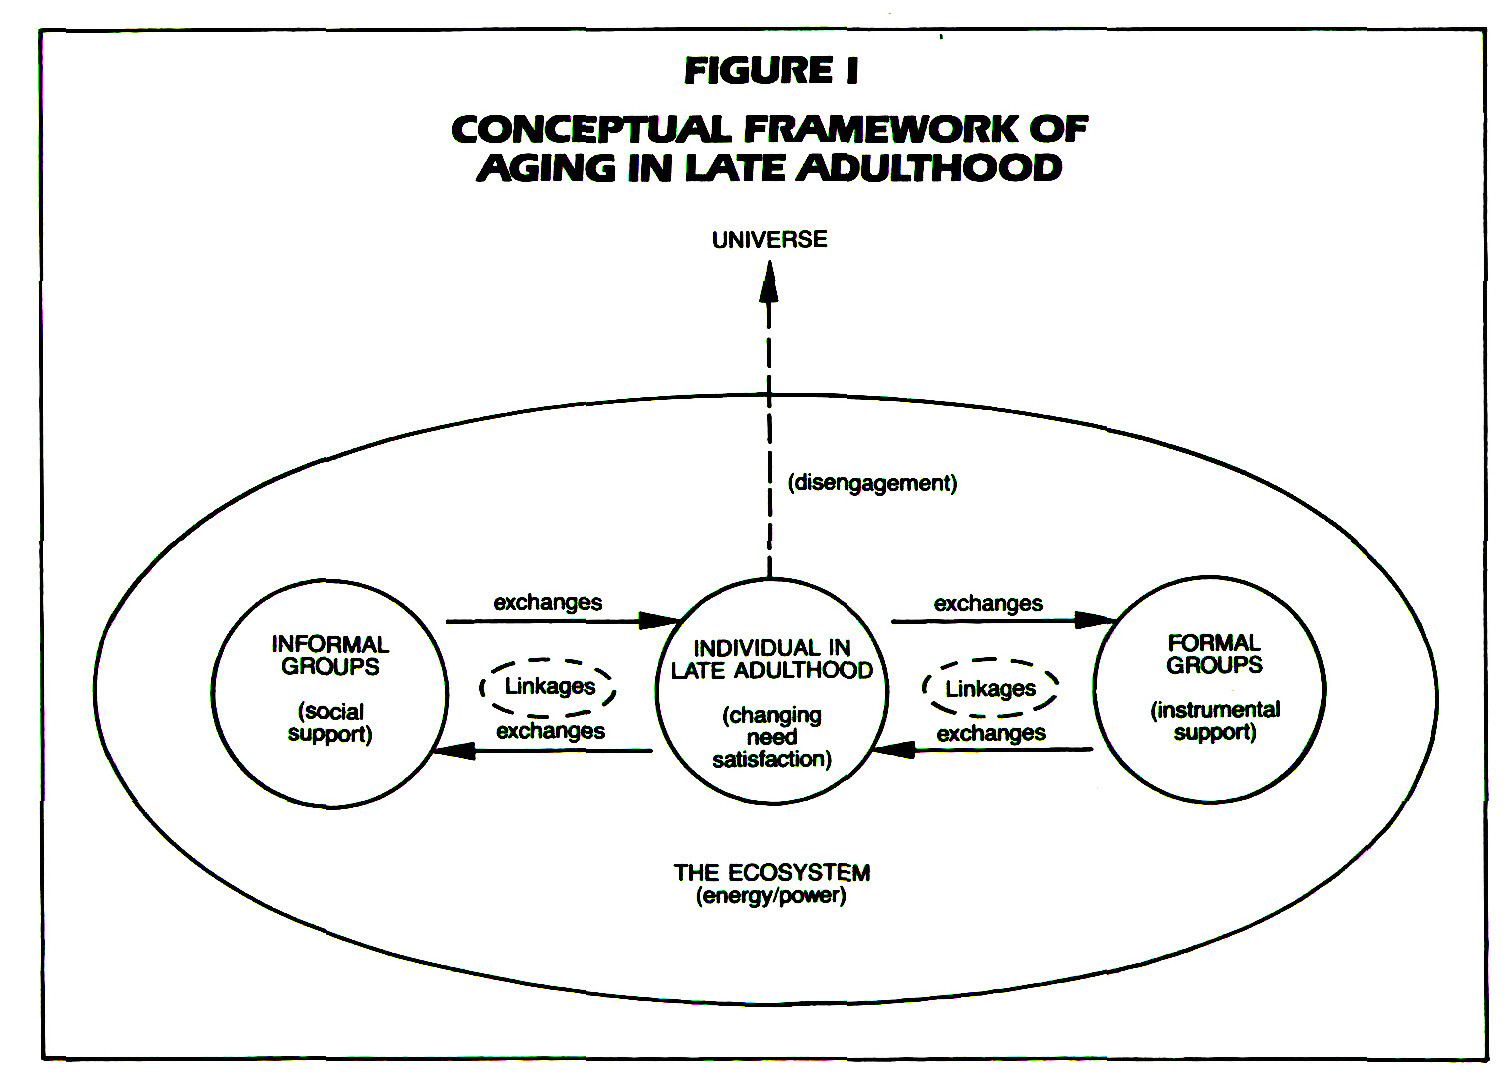 FIGURE 1CONCEPTUAL FRAMEWORK OF AGING IN LATE ADULTHOOD